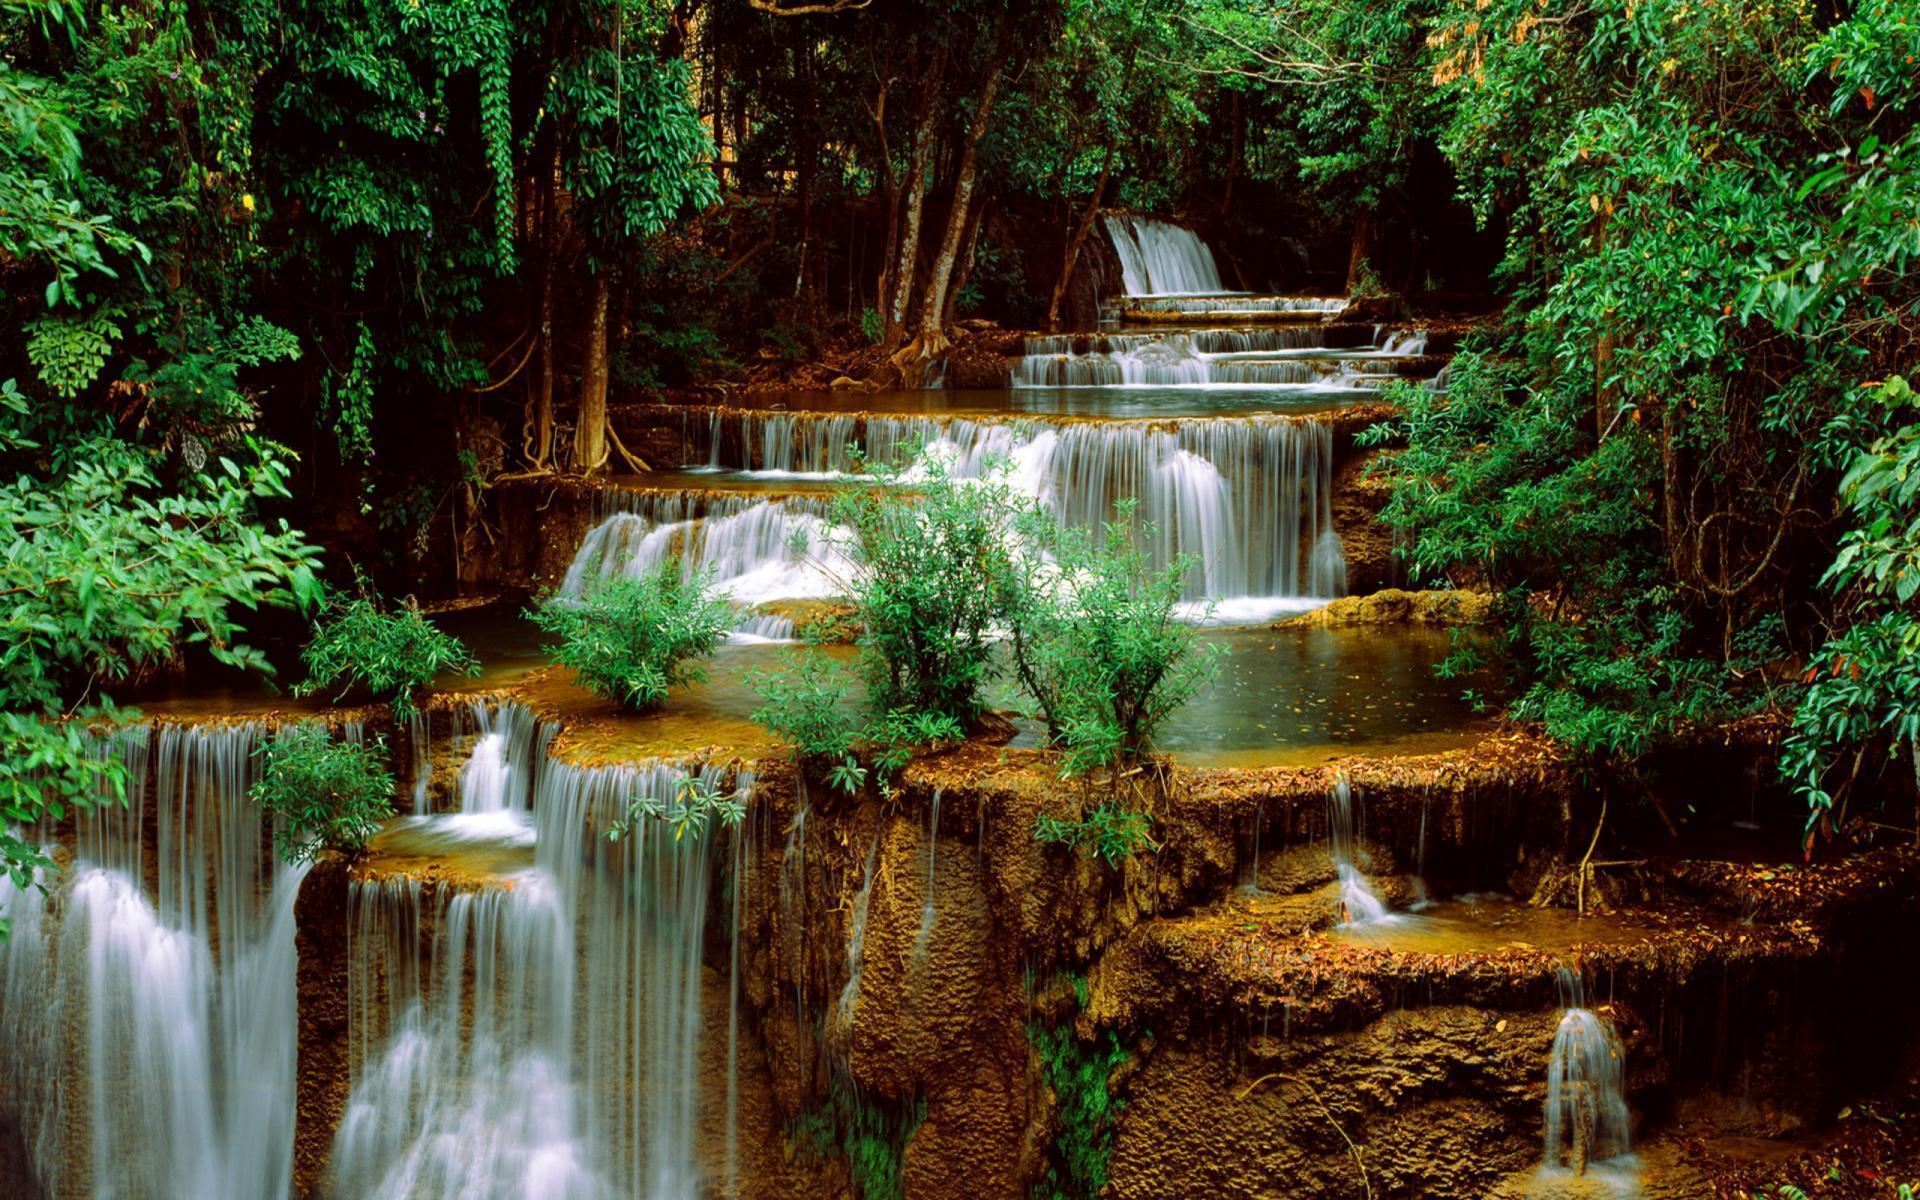 Forest <b>Waterfall Wallpaper</b> - WallpaperSafari